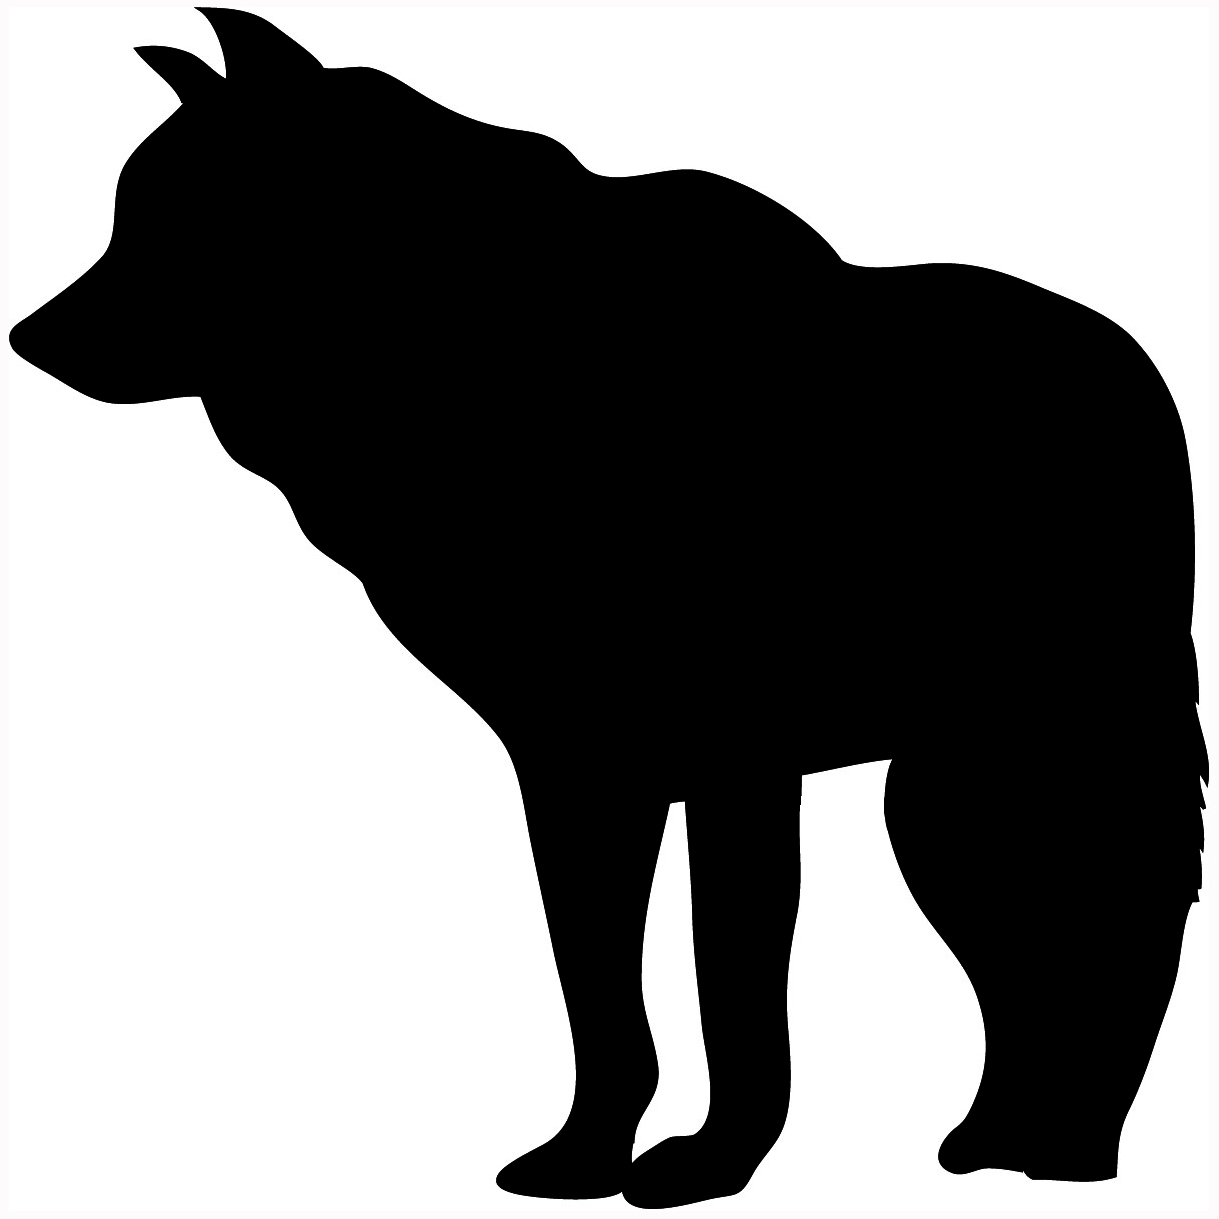 Howling wolf silhouette sitting